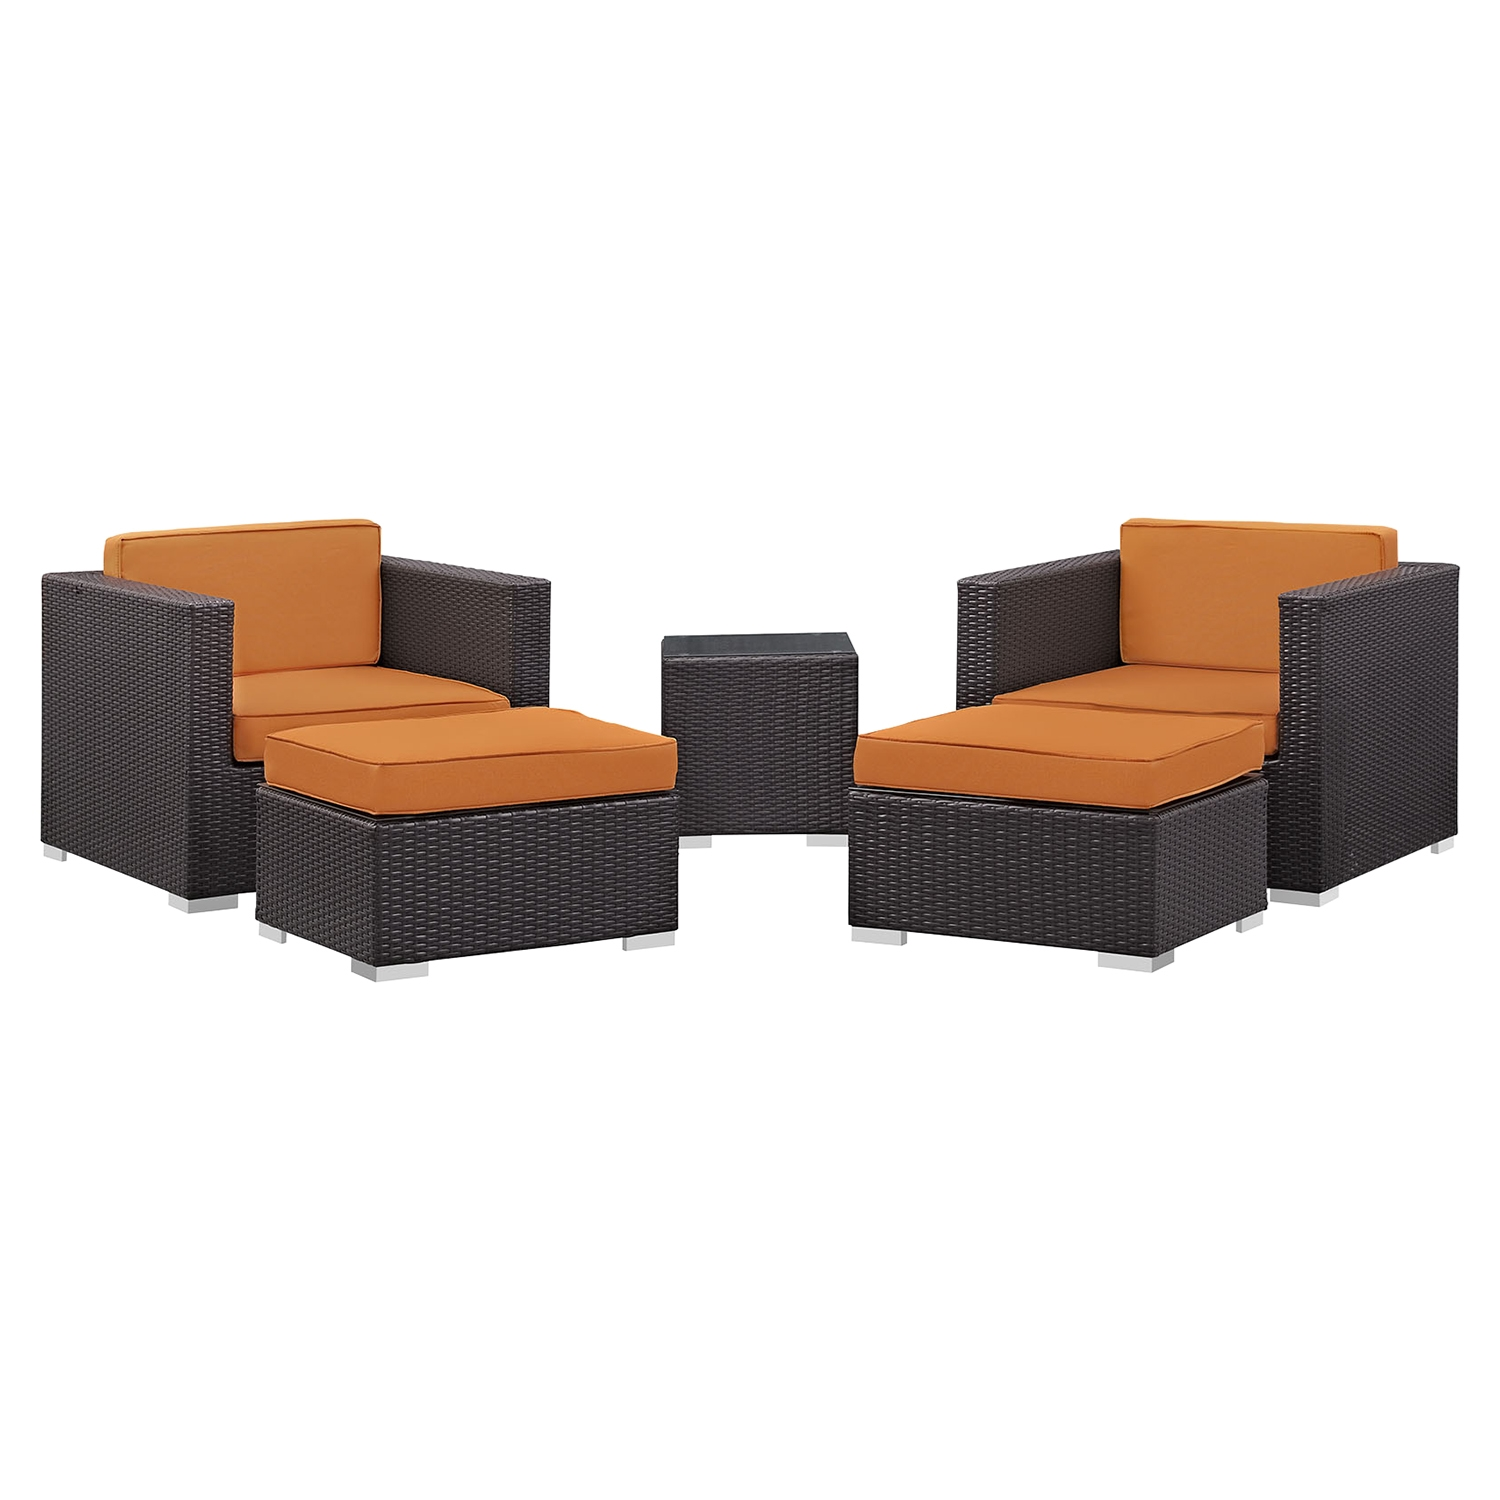 Convene 5 Pieces Outdoor Patio Sectional Set - Square Side Table - EEI-1809-EXP-SET